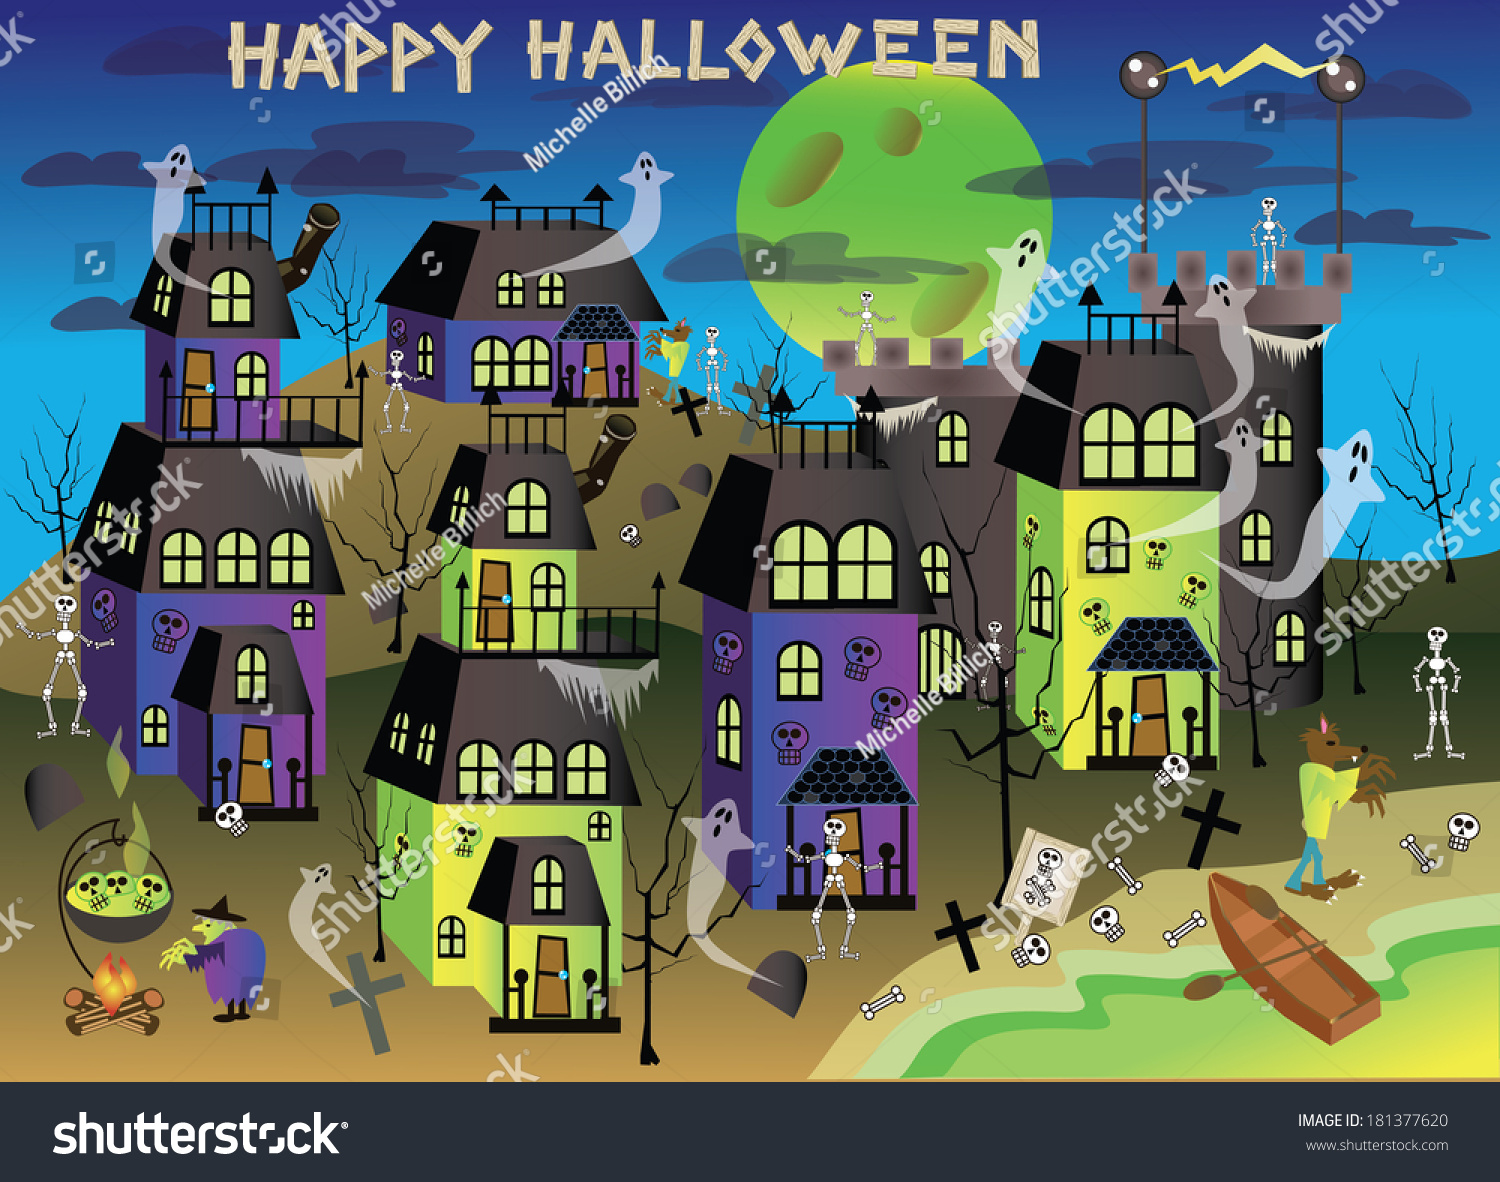 royalty-free spooky halloween town with green lakes… #181377620